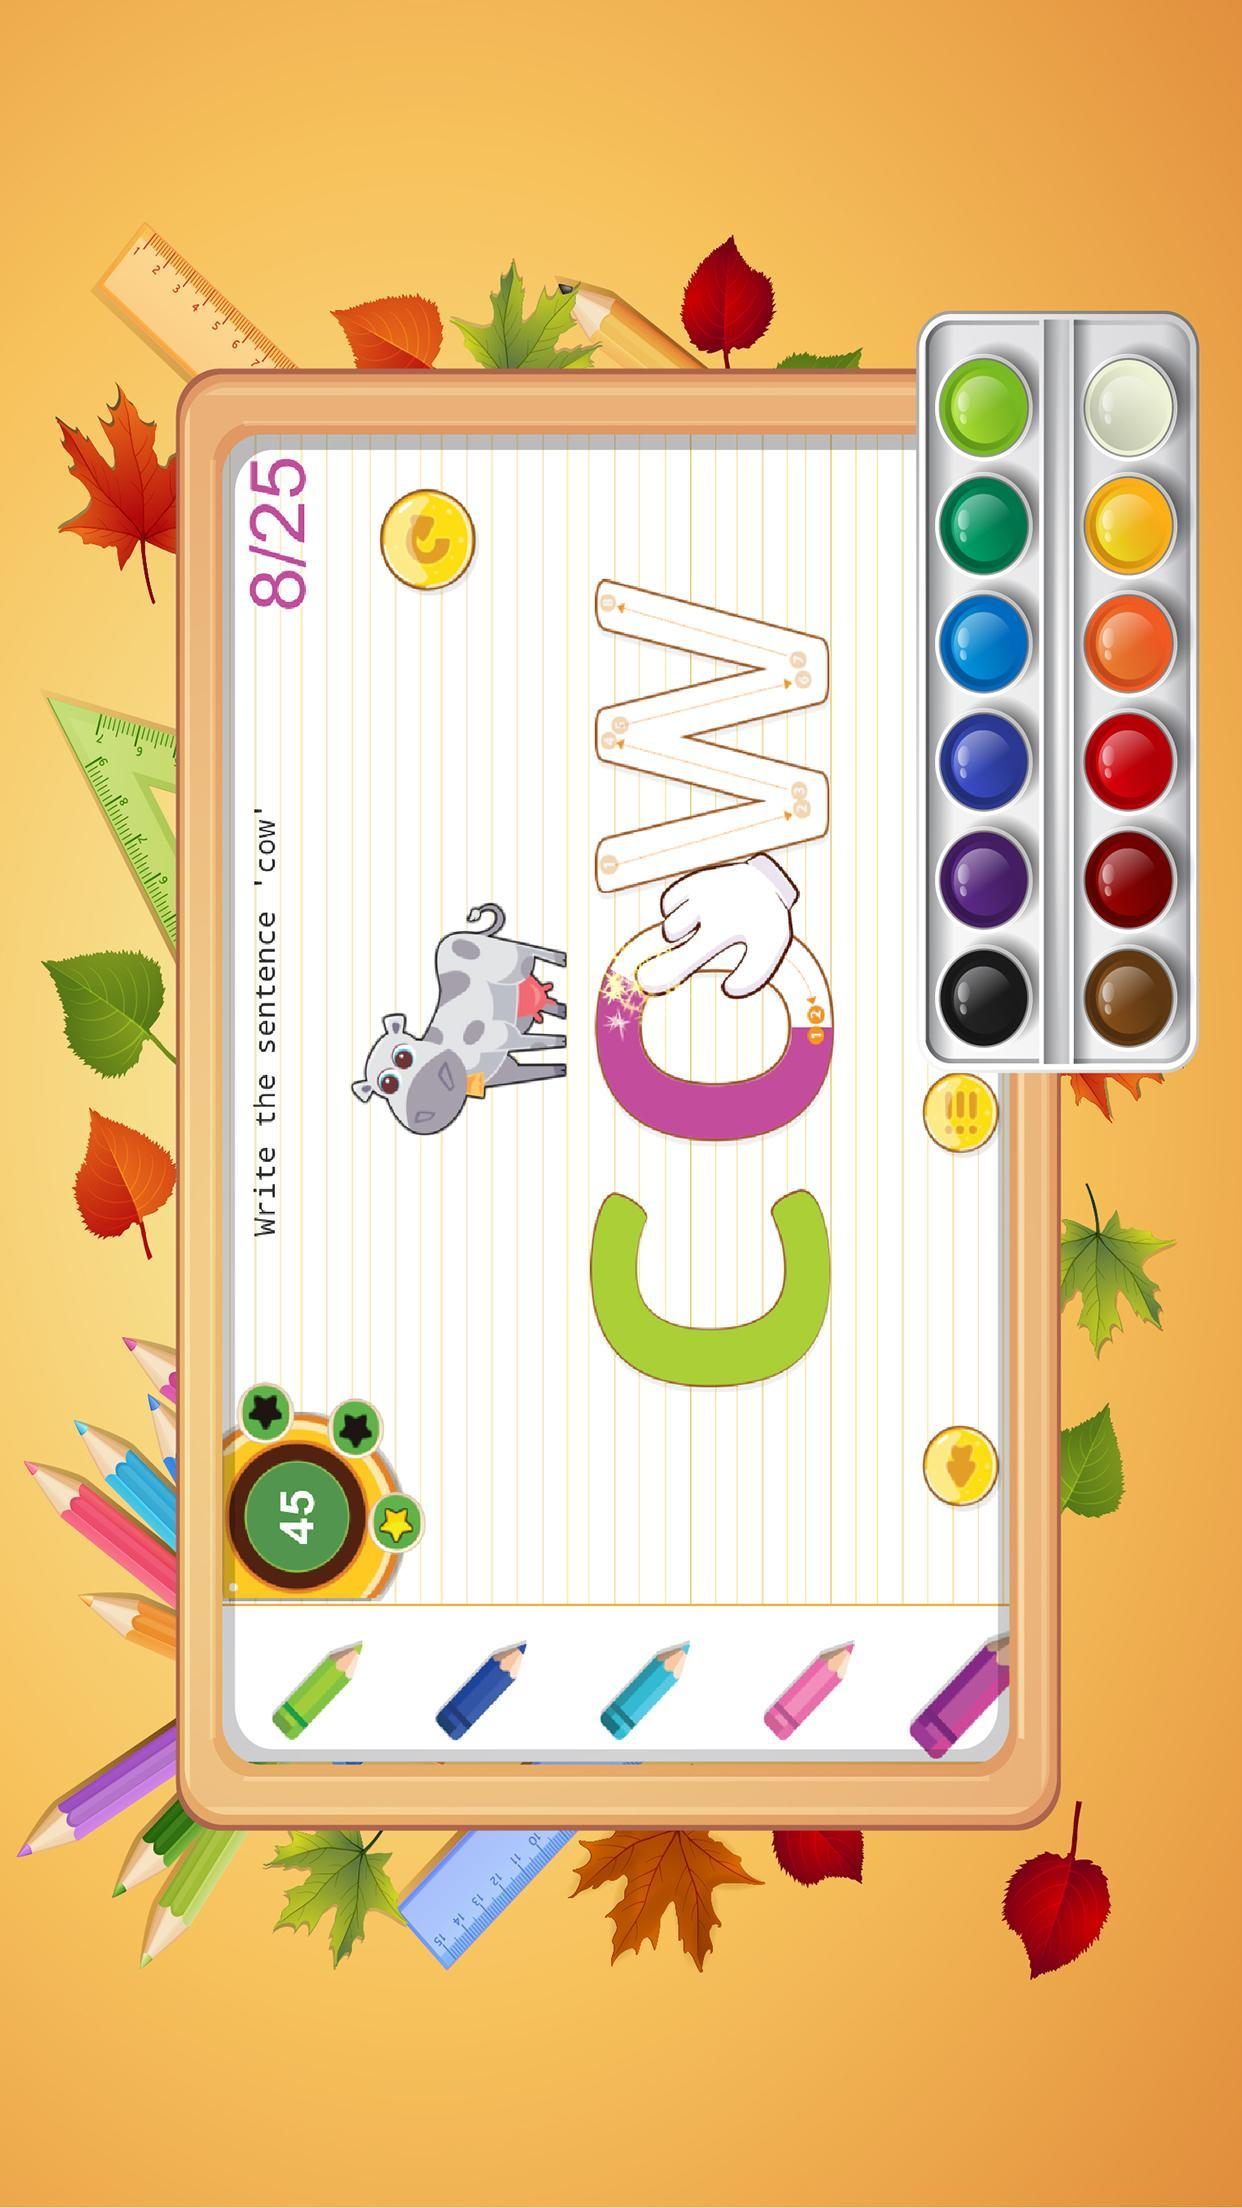 Apps that auto trace clipart clipart images gallery for free.